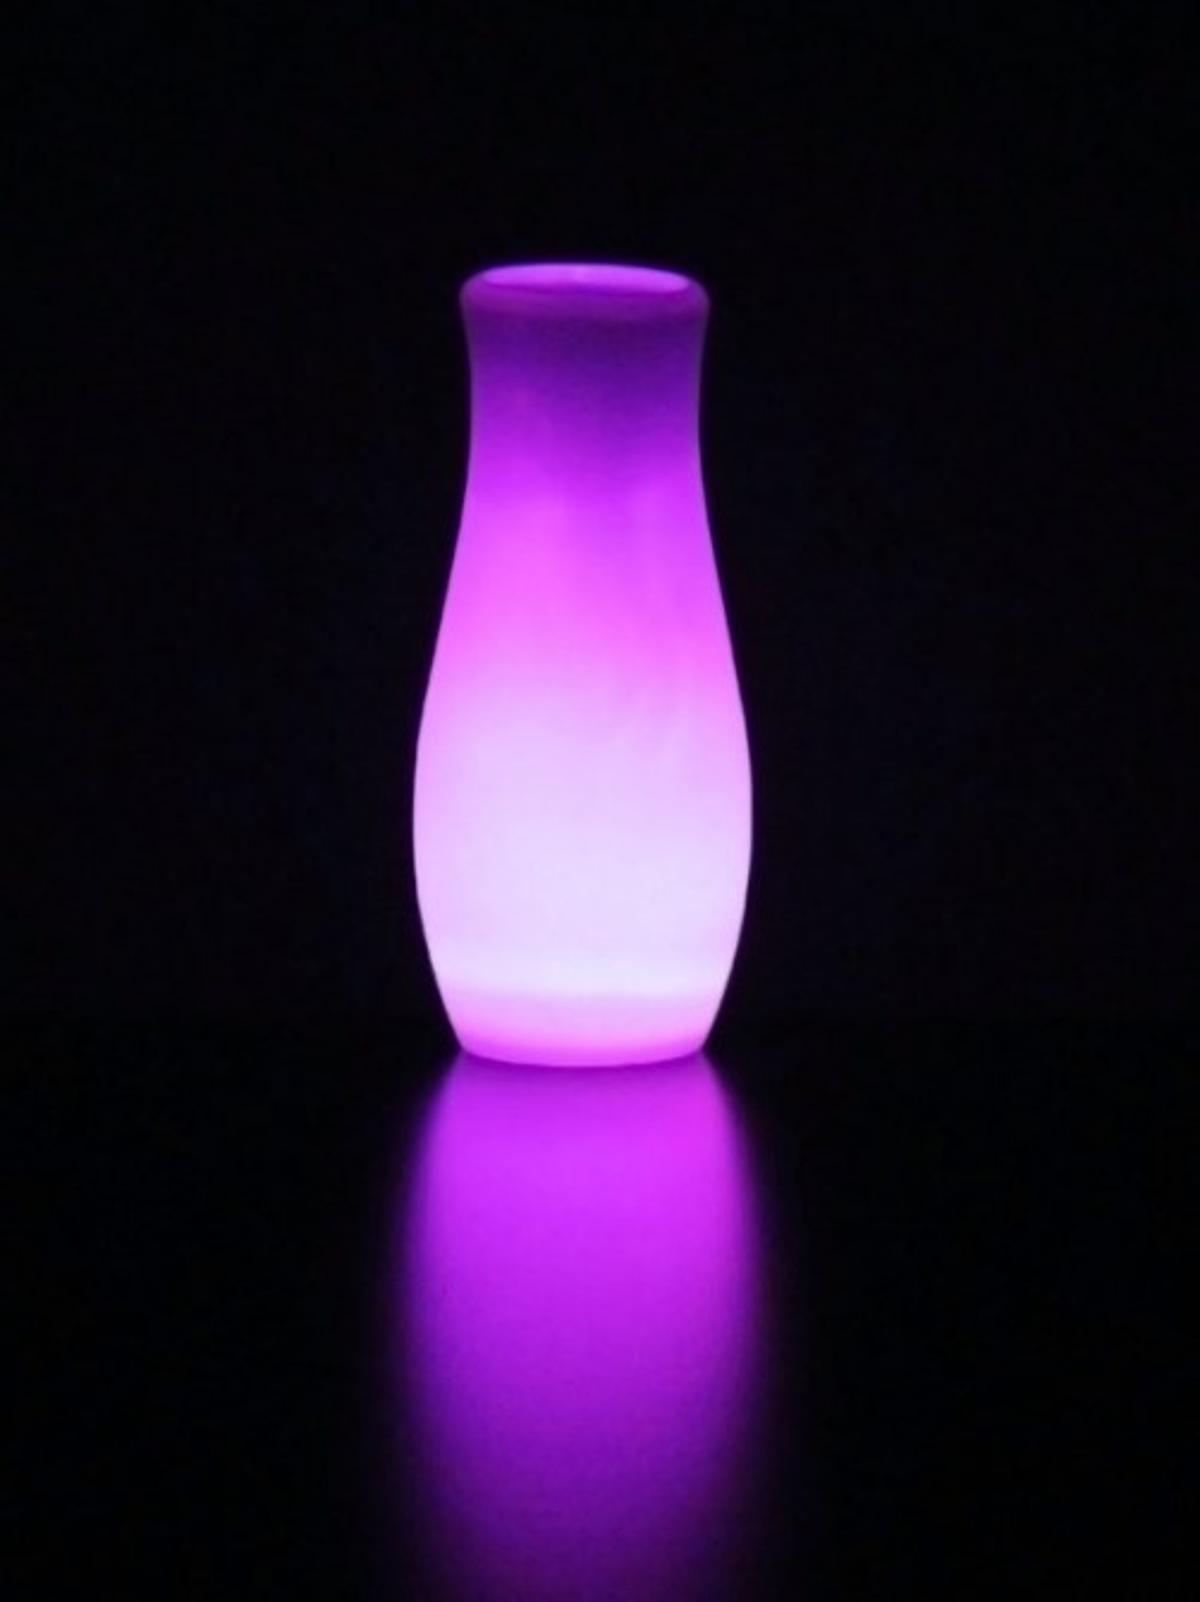 The Psyleron Mind Lamp changes color due to the power of the human mind … we think